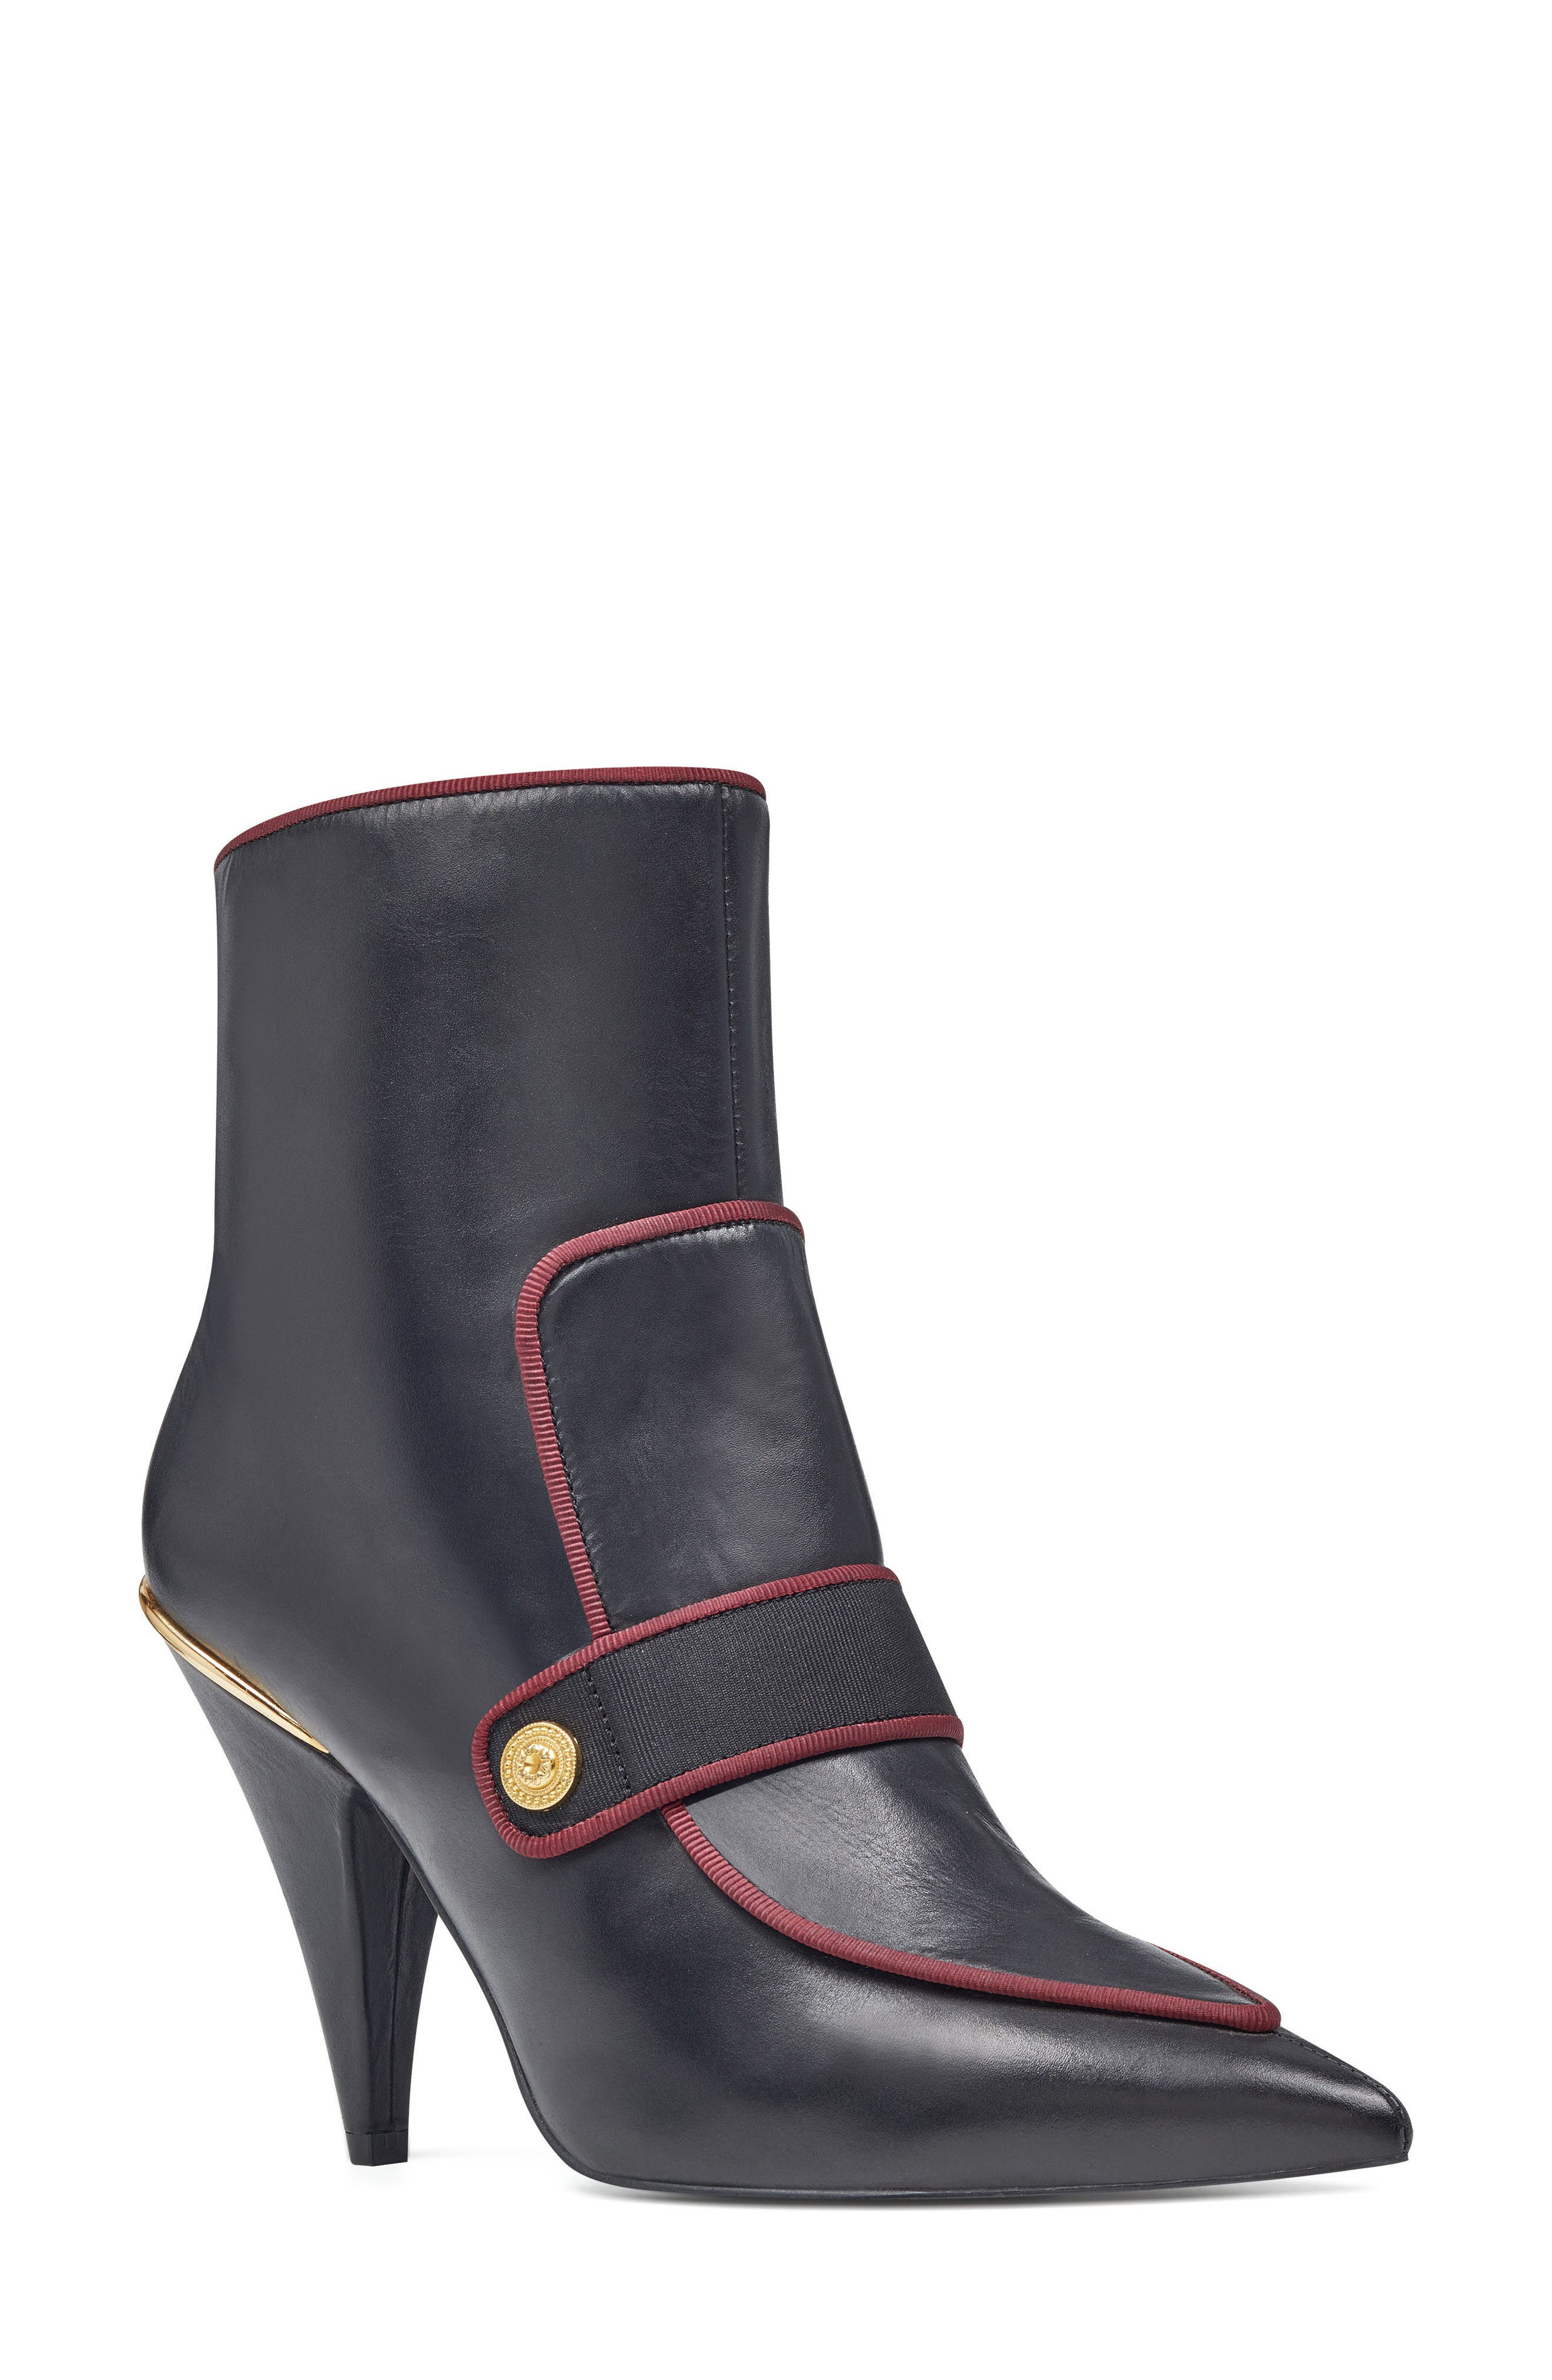 Westham Pointy Toe Bootie,                         Main,                         color, 001